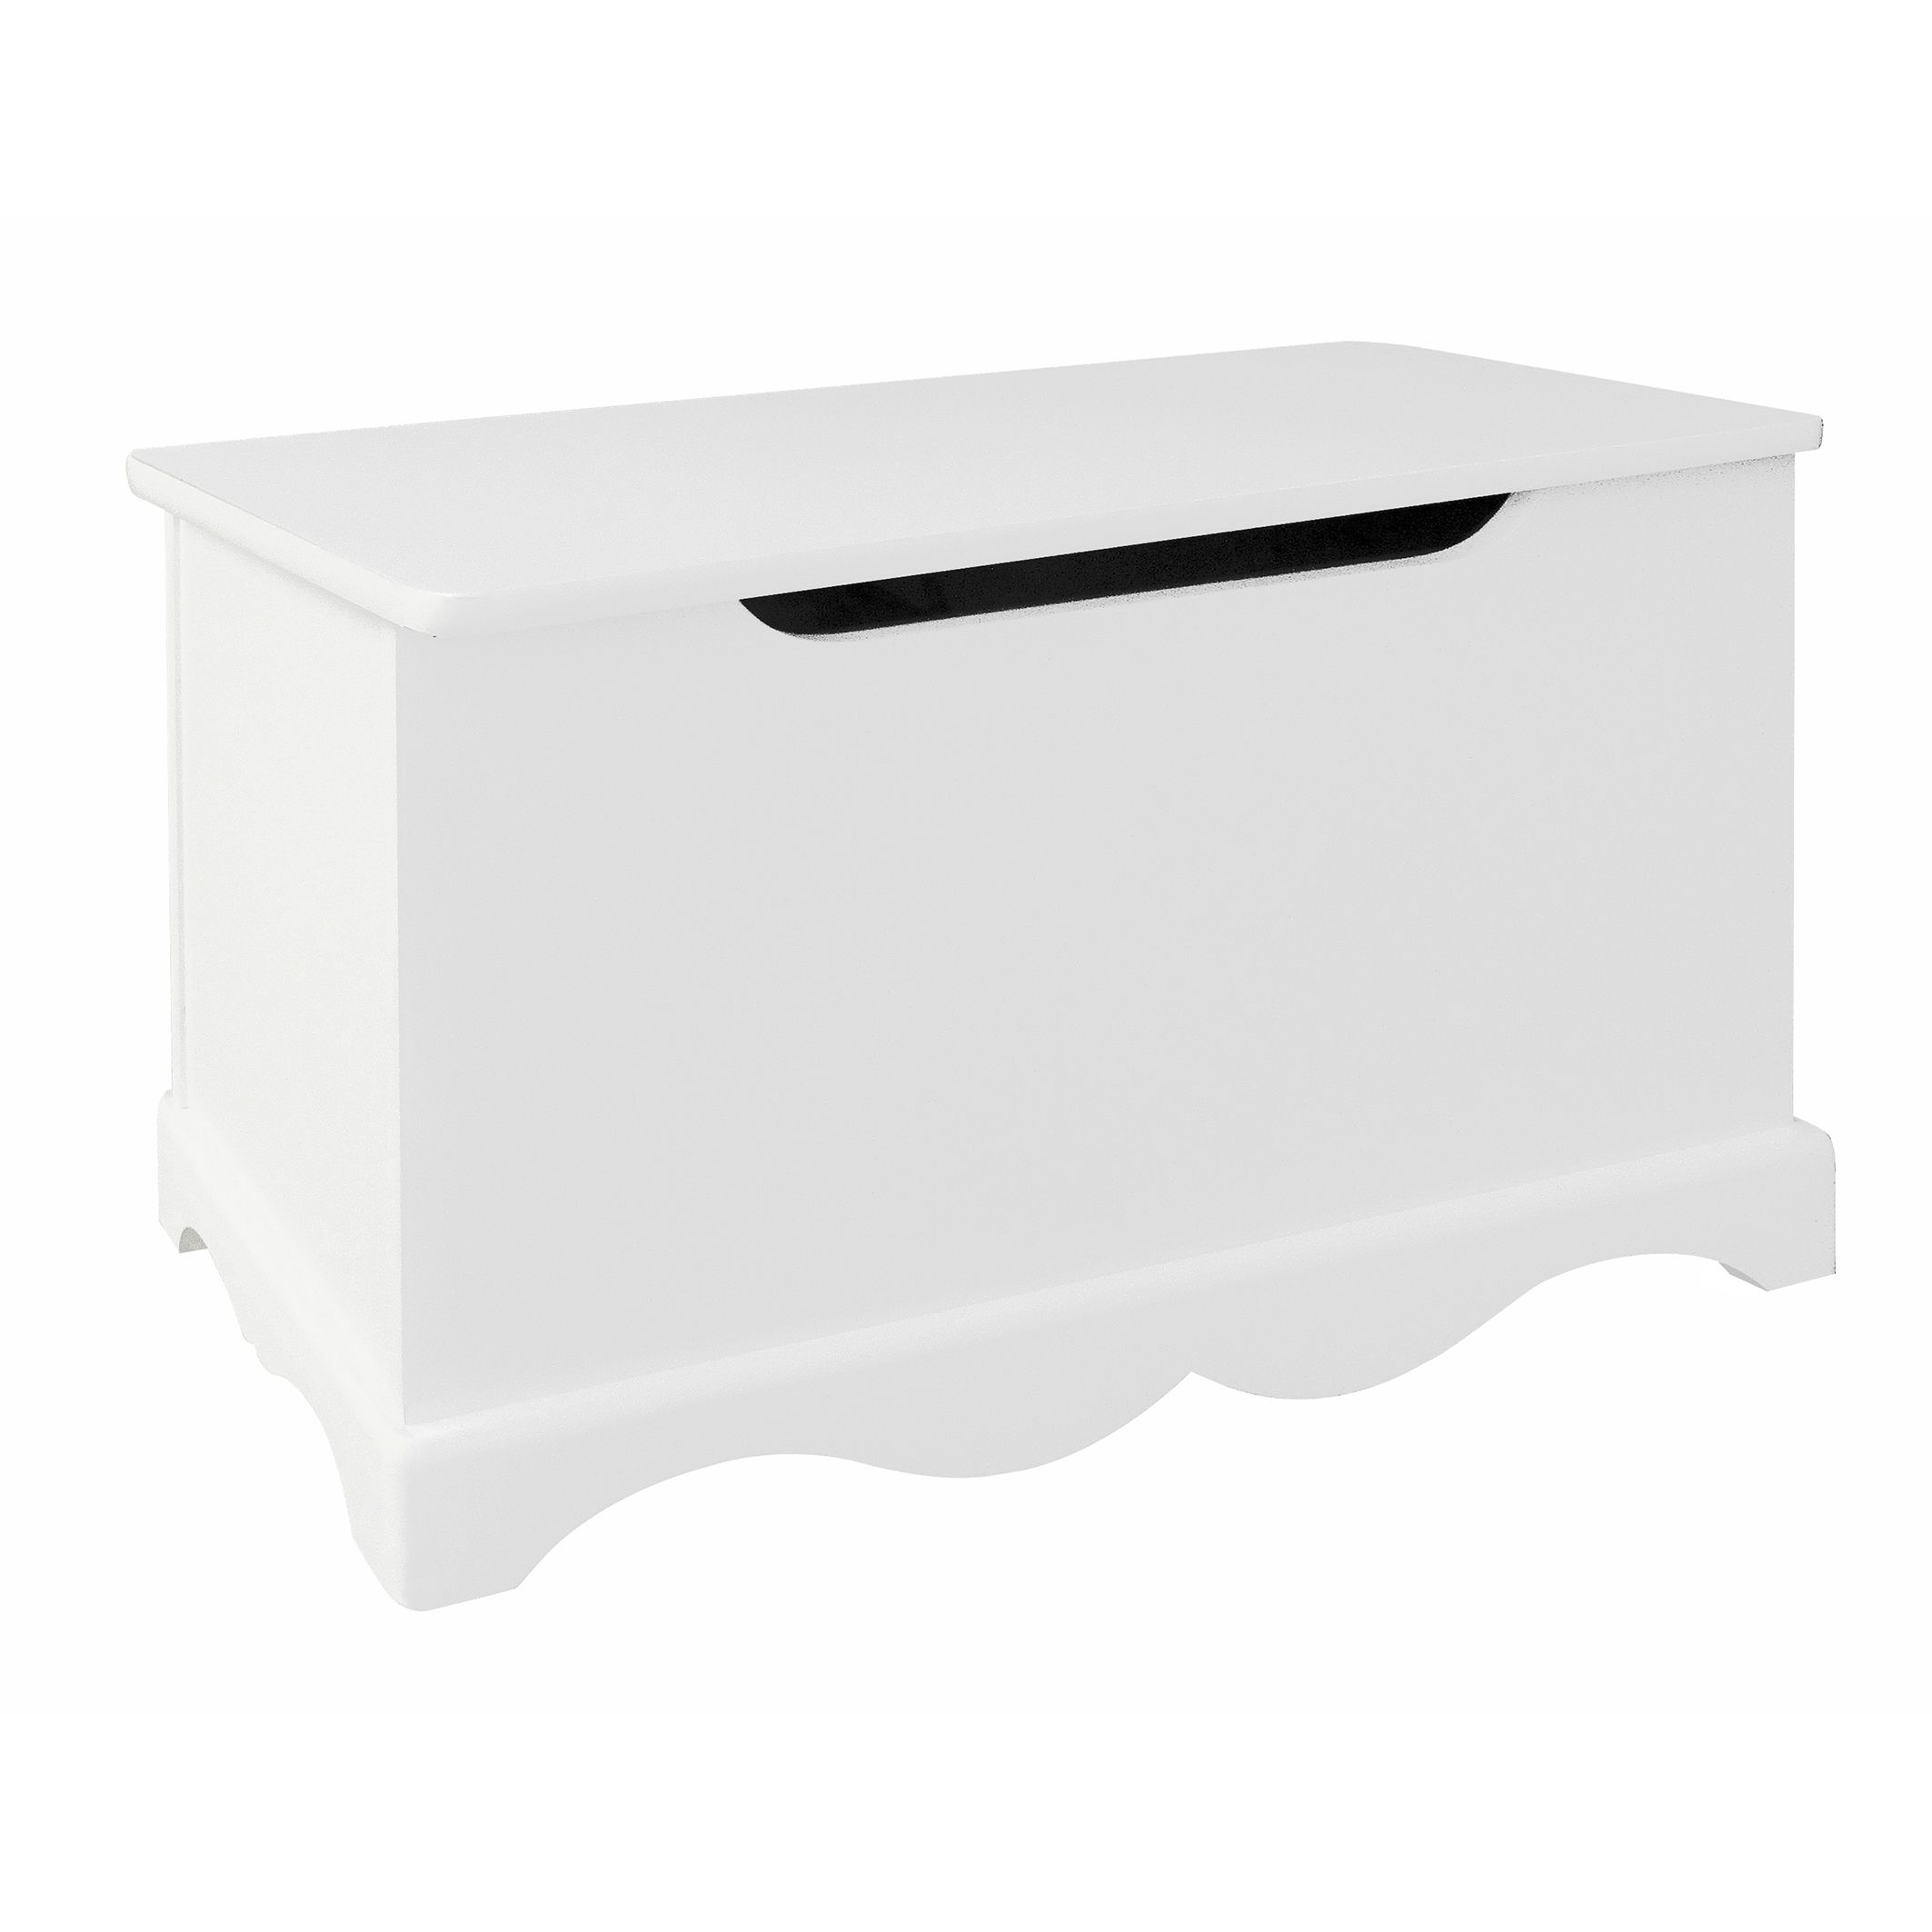 This small white wooden toy box is the perfect storage space for